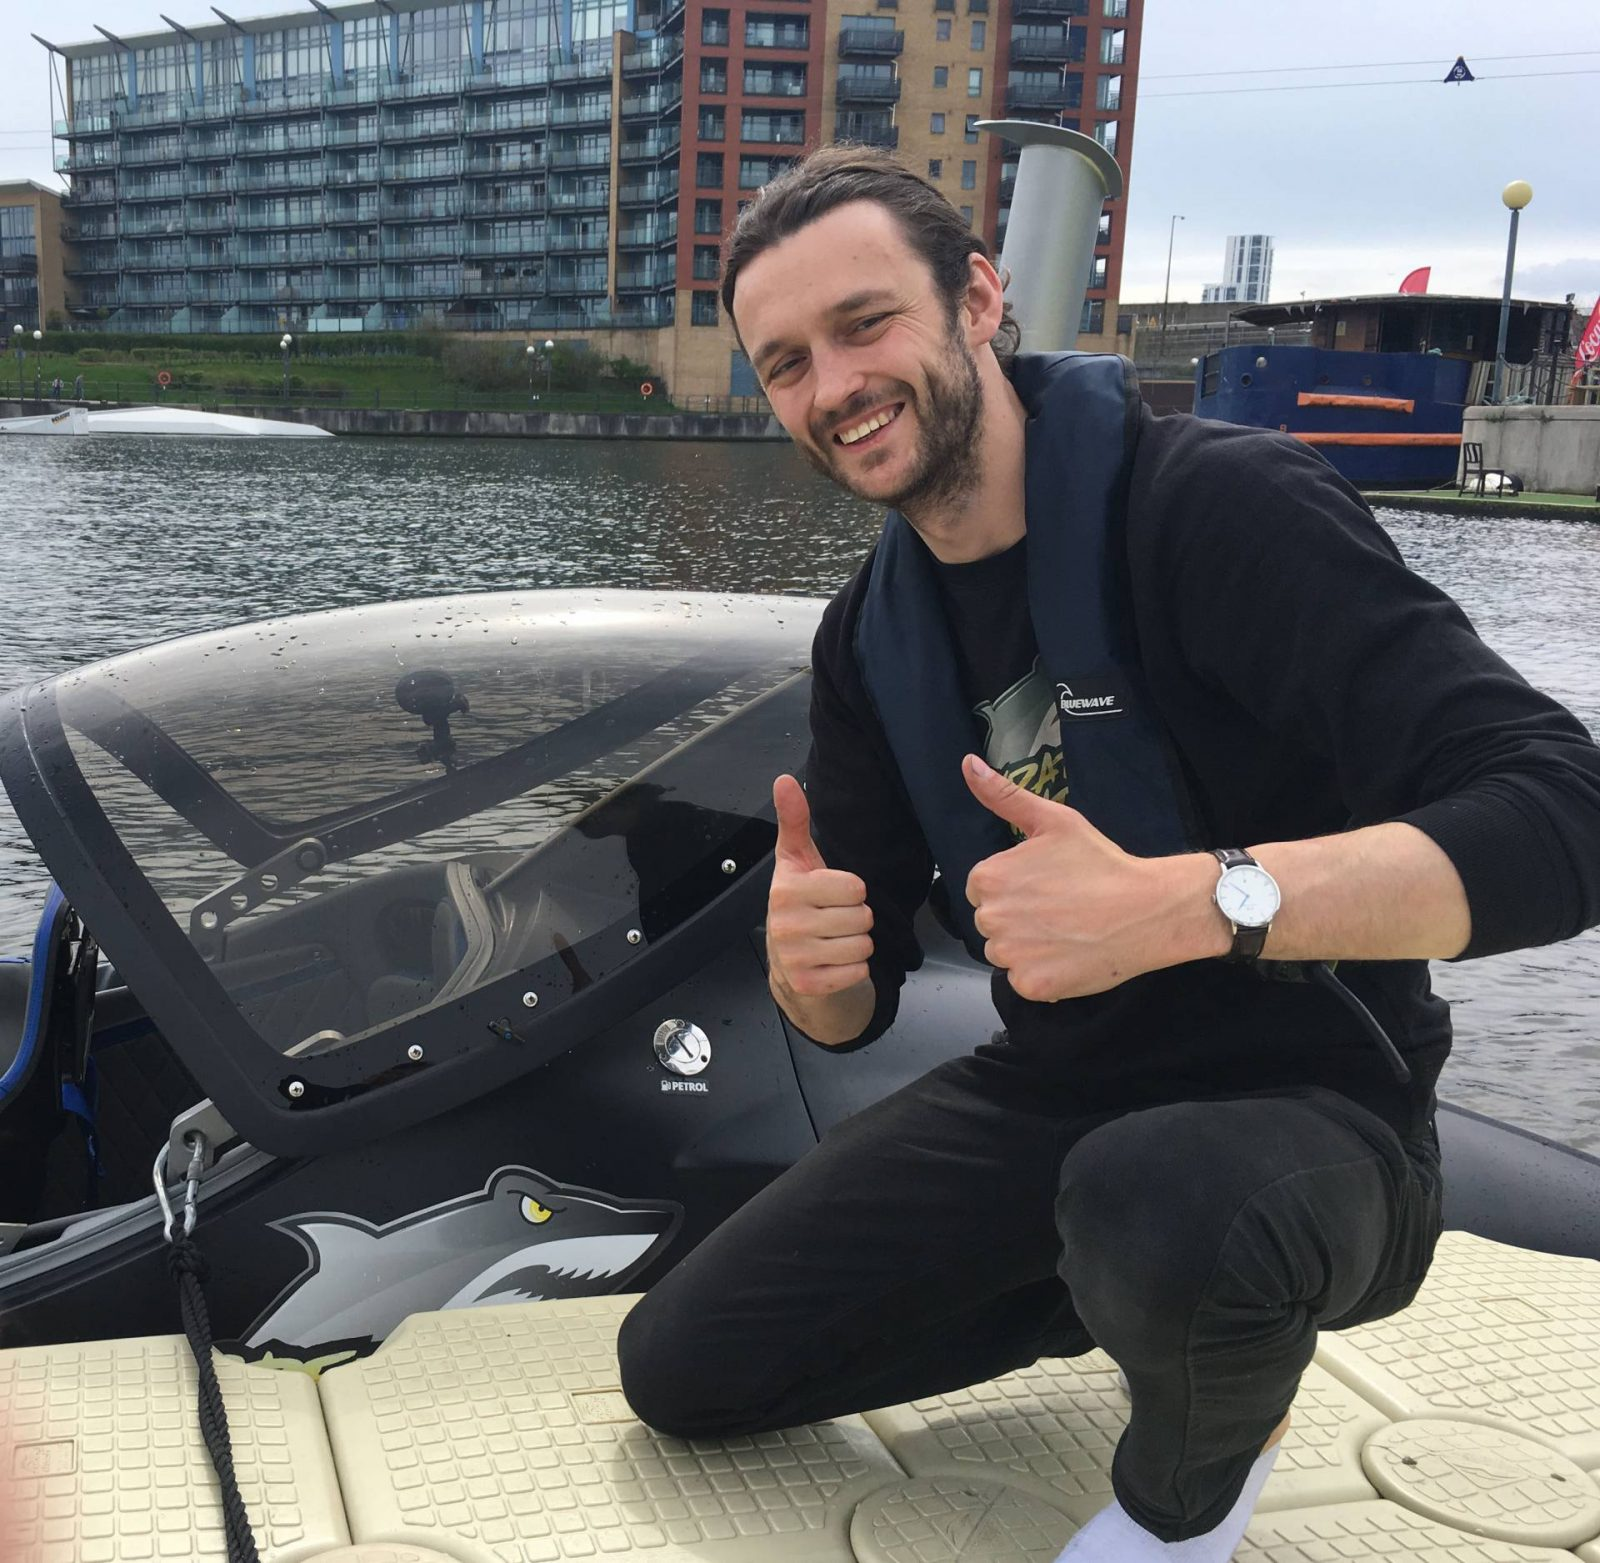 Trying Out the Seabreacher at London's Royal Victoria Docks, Adam the Seabreacher pilot